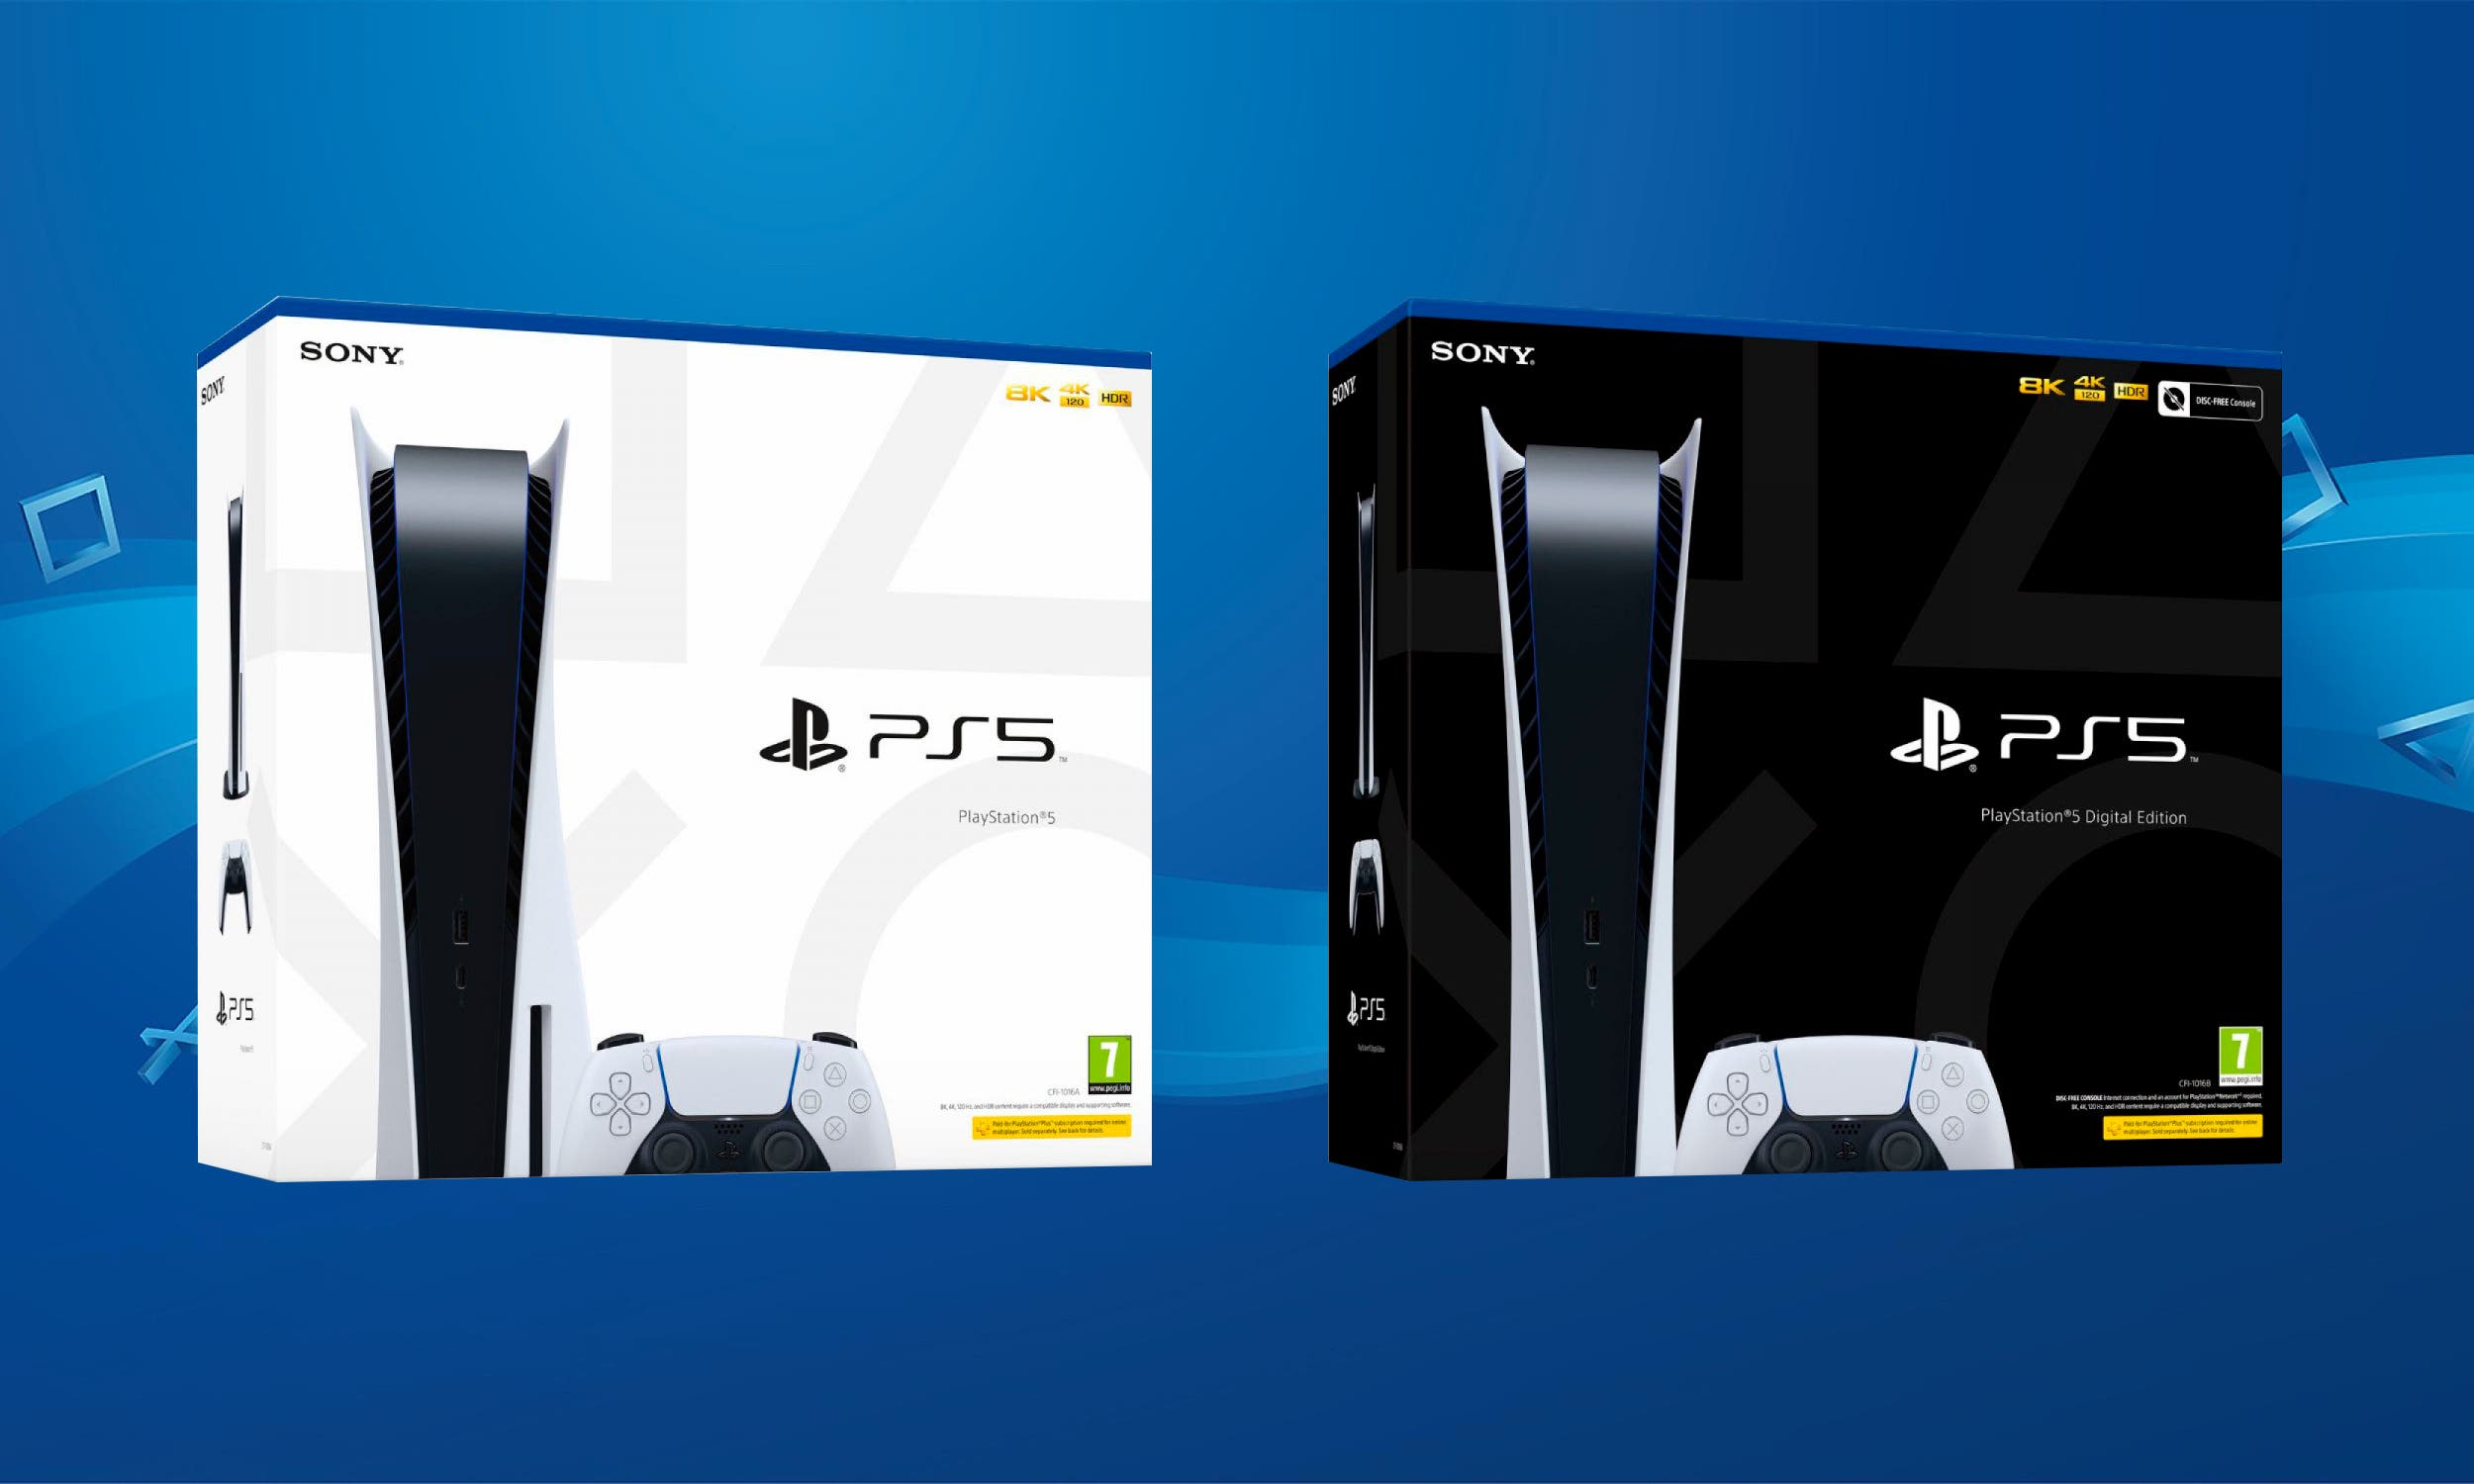 PlayStation 5 boxes